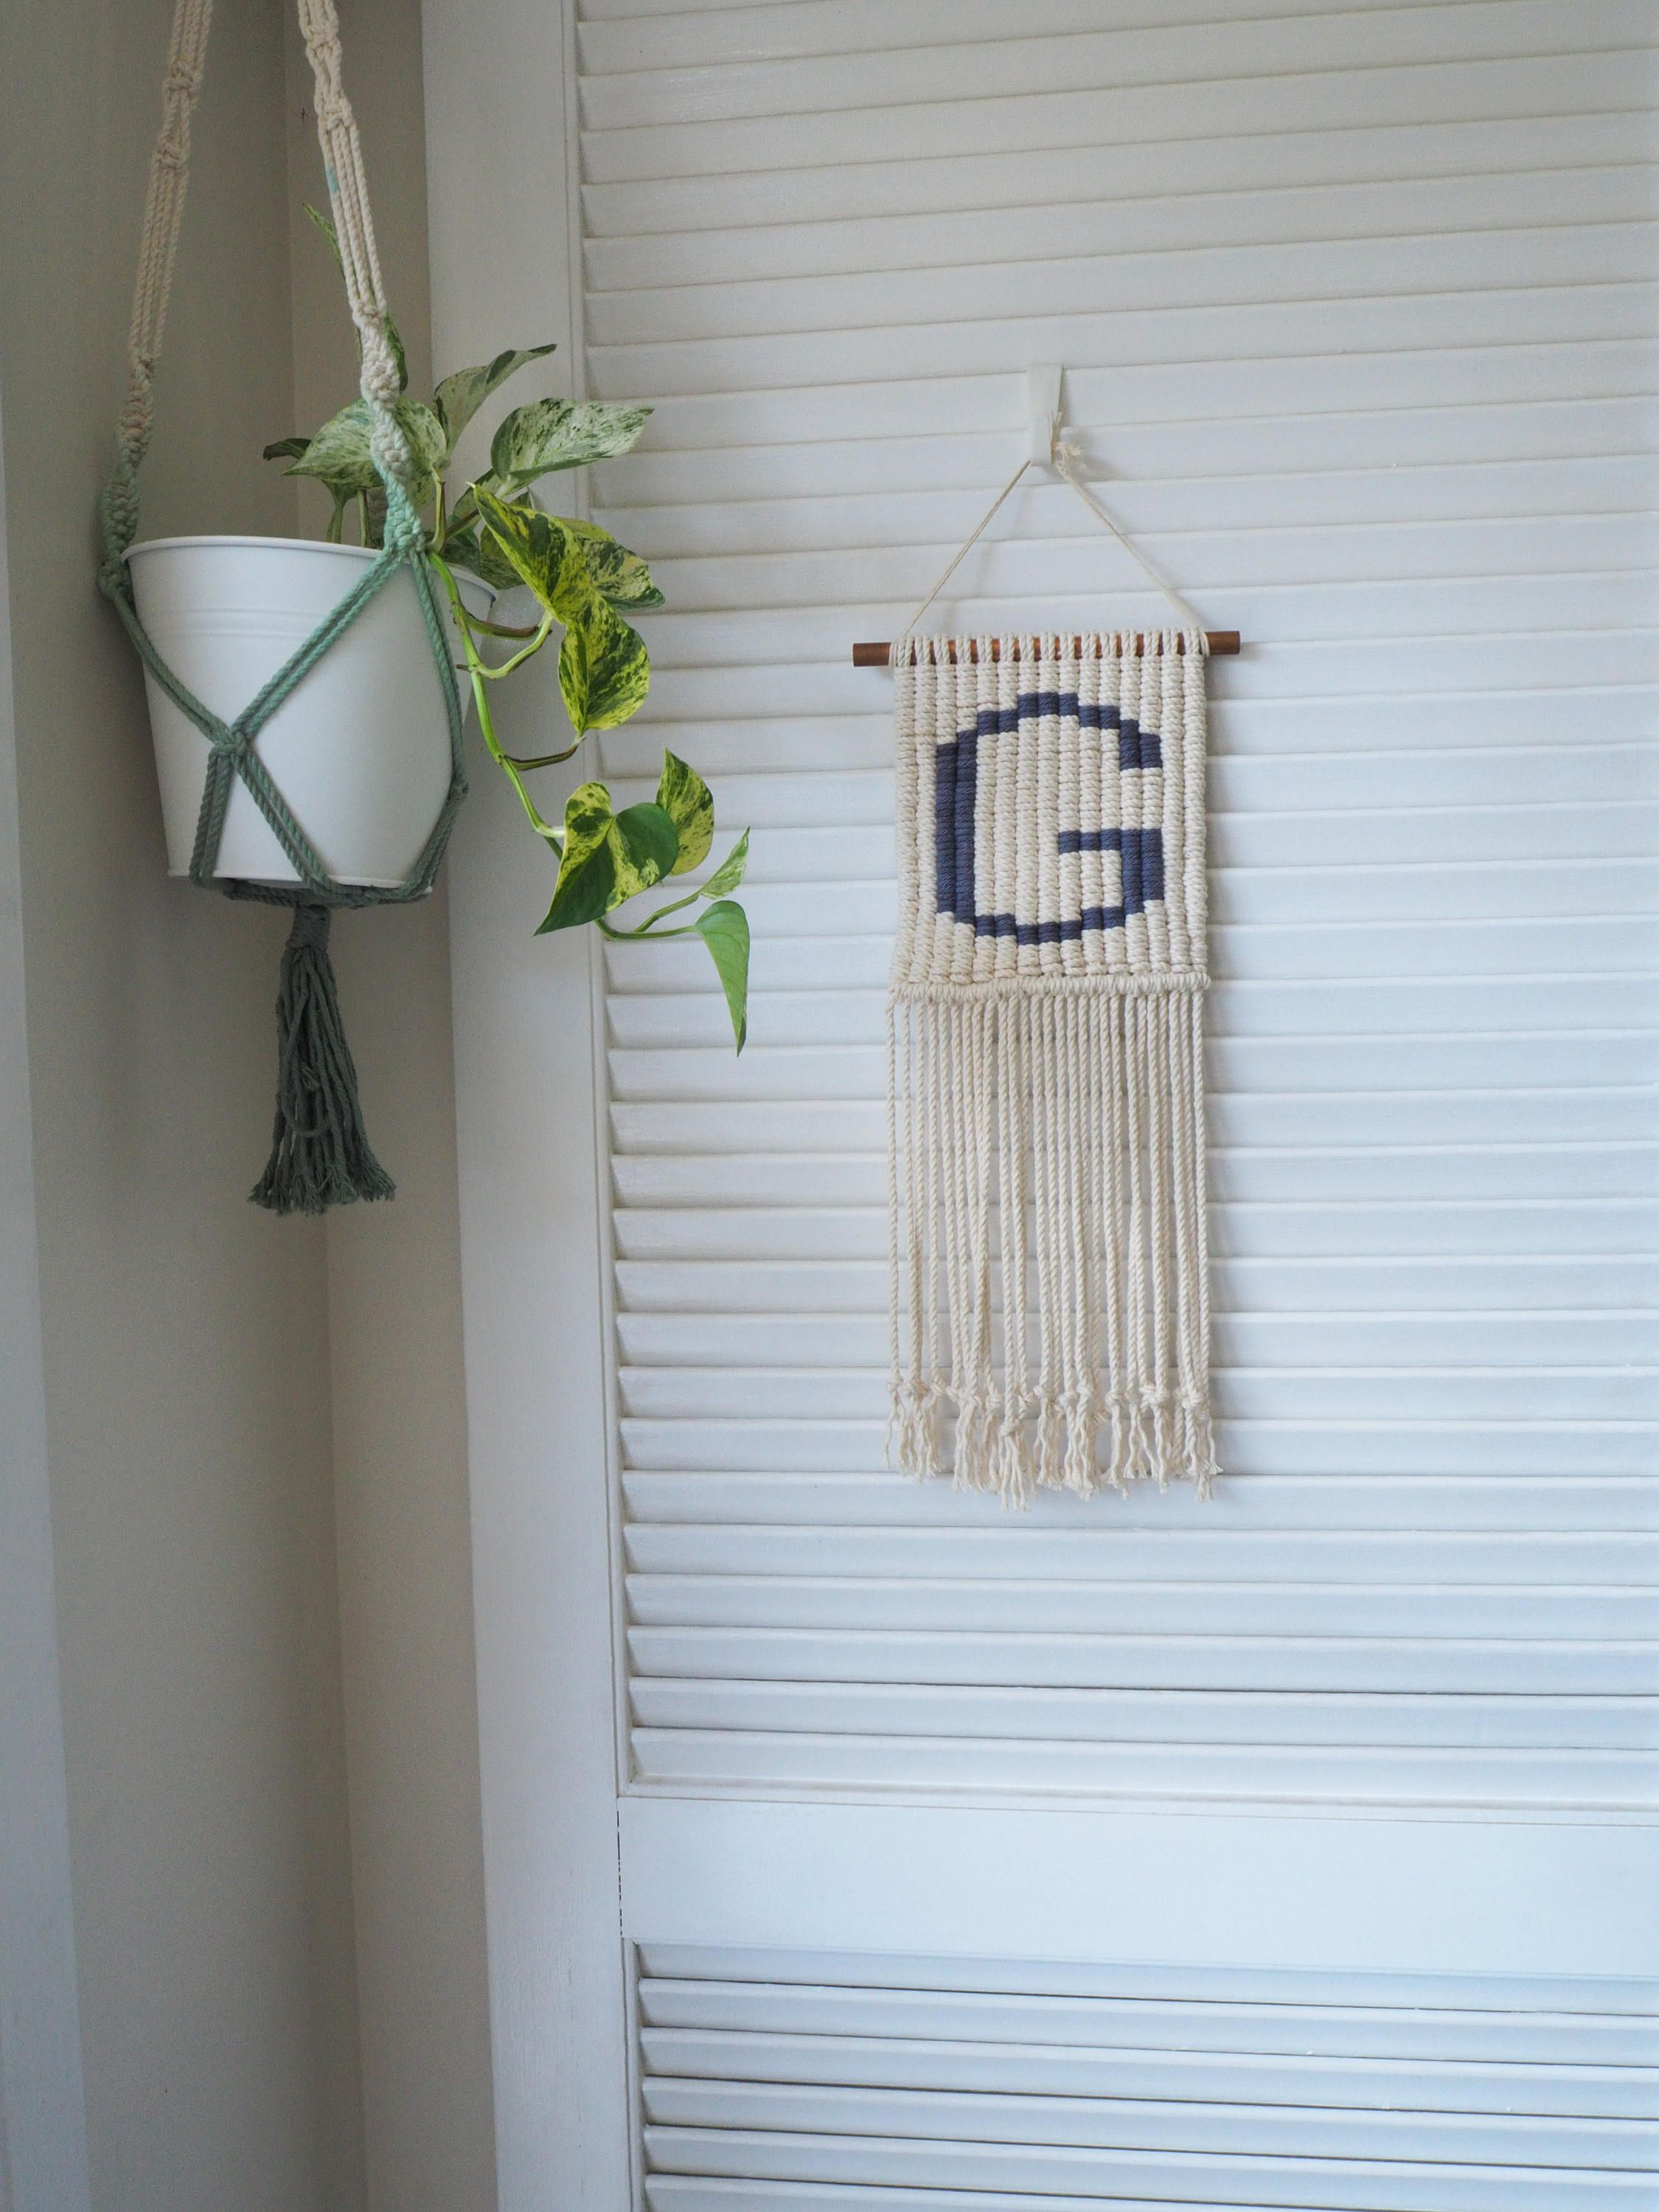 Letter Macrame Wall Hanging Customized Nursery Kids Decor By Lbartanddesign On Etsy Macrame Wall Hanging Wall Hanging Custom Nursery